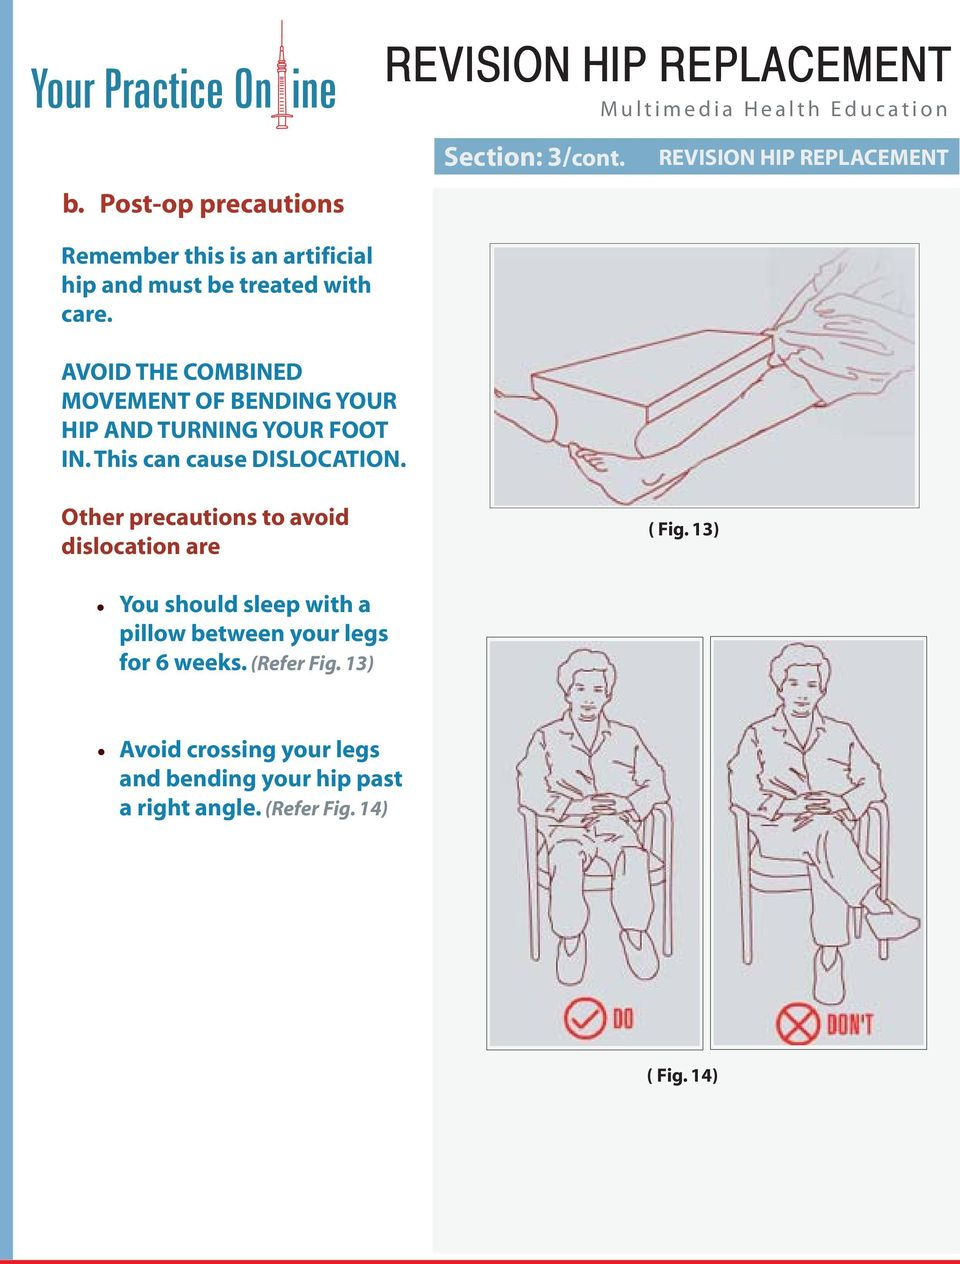 Other precautions to avoid dislocation are You should sleep with a pillow between your legs for 6 weeks.